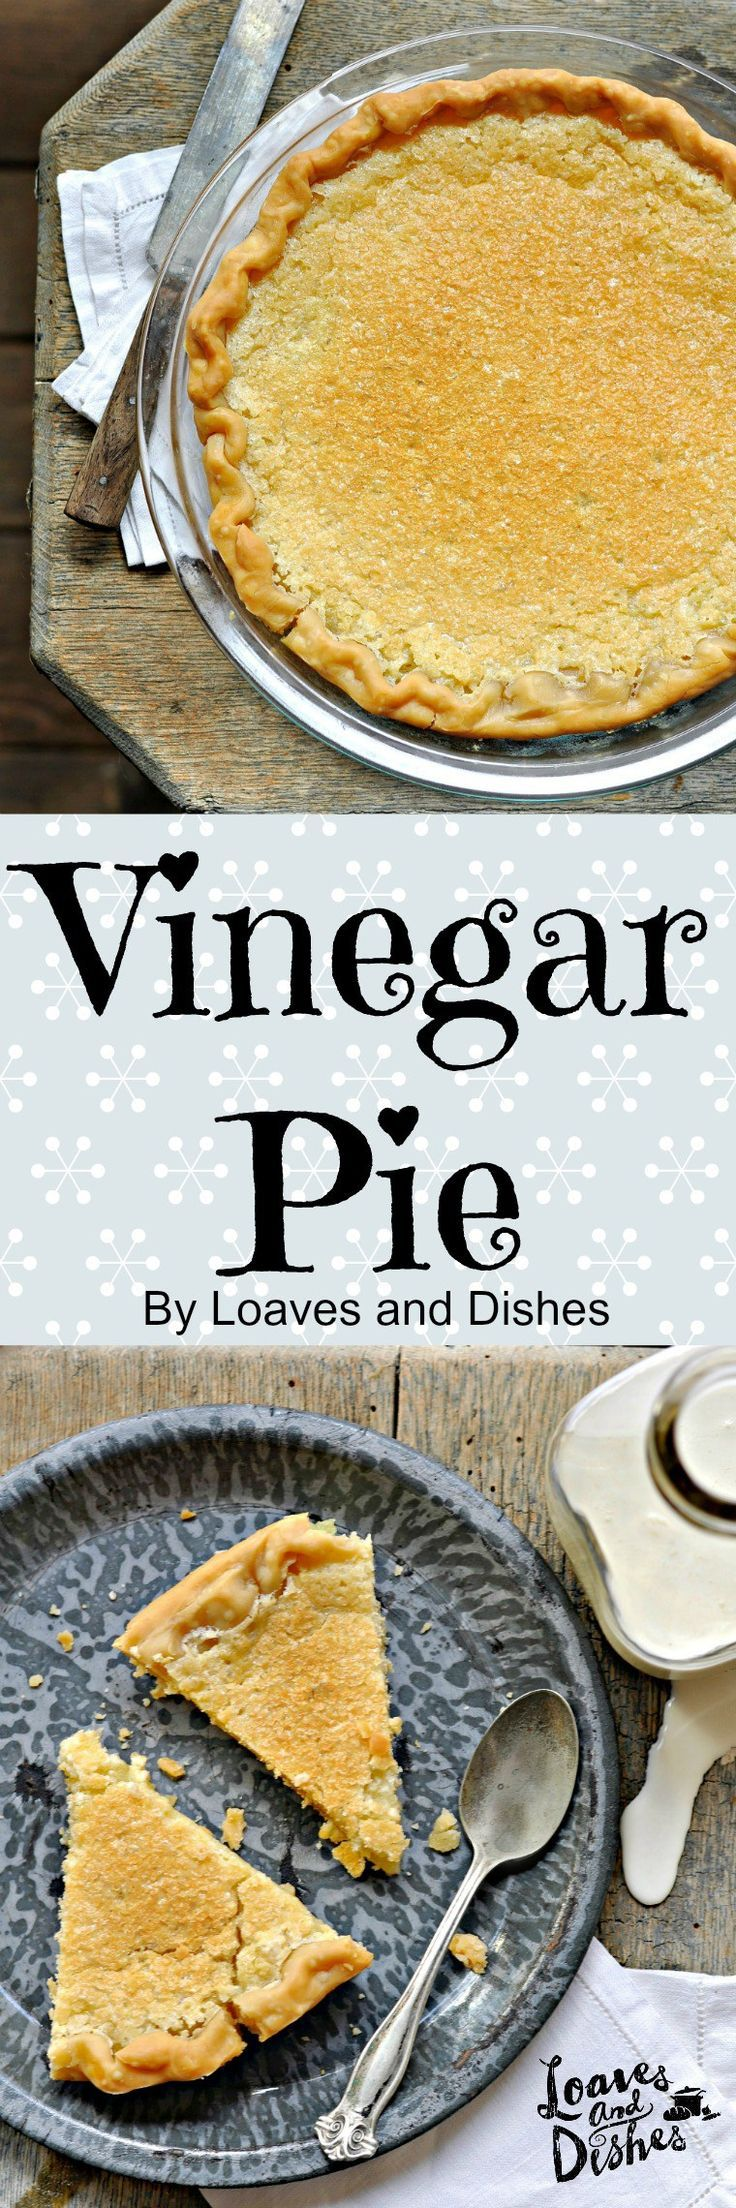 ... Pies on Pinterest | Pastries, Pecan cheesecake and Pie crust recipes